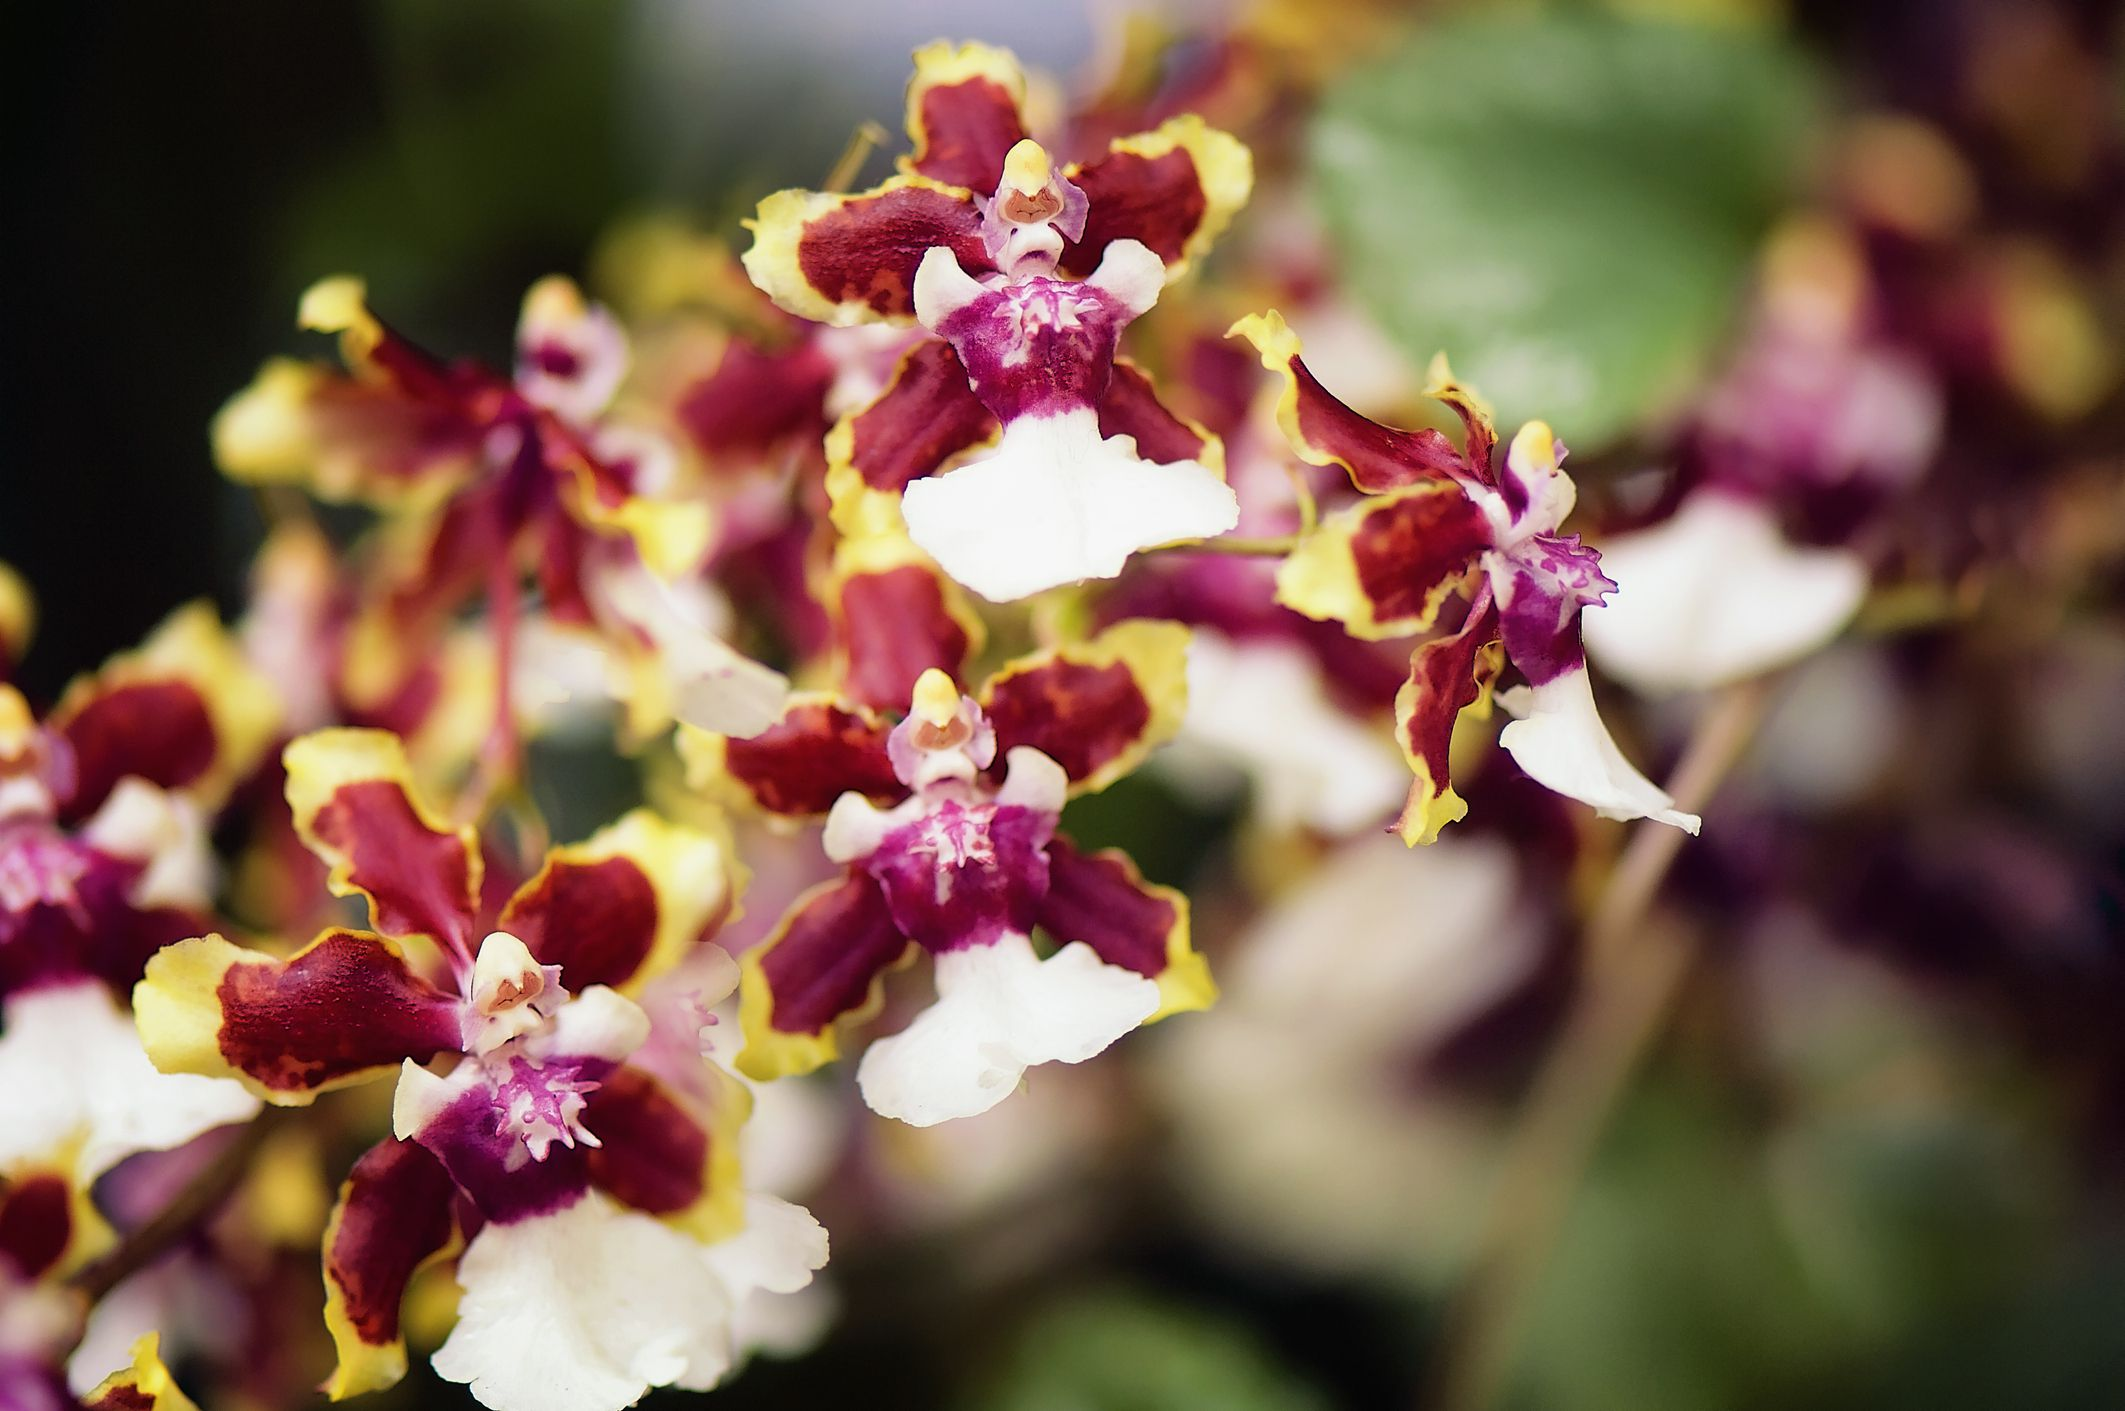 6 Fragrant Flowers That Smell Like Chocolate